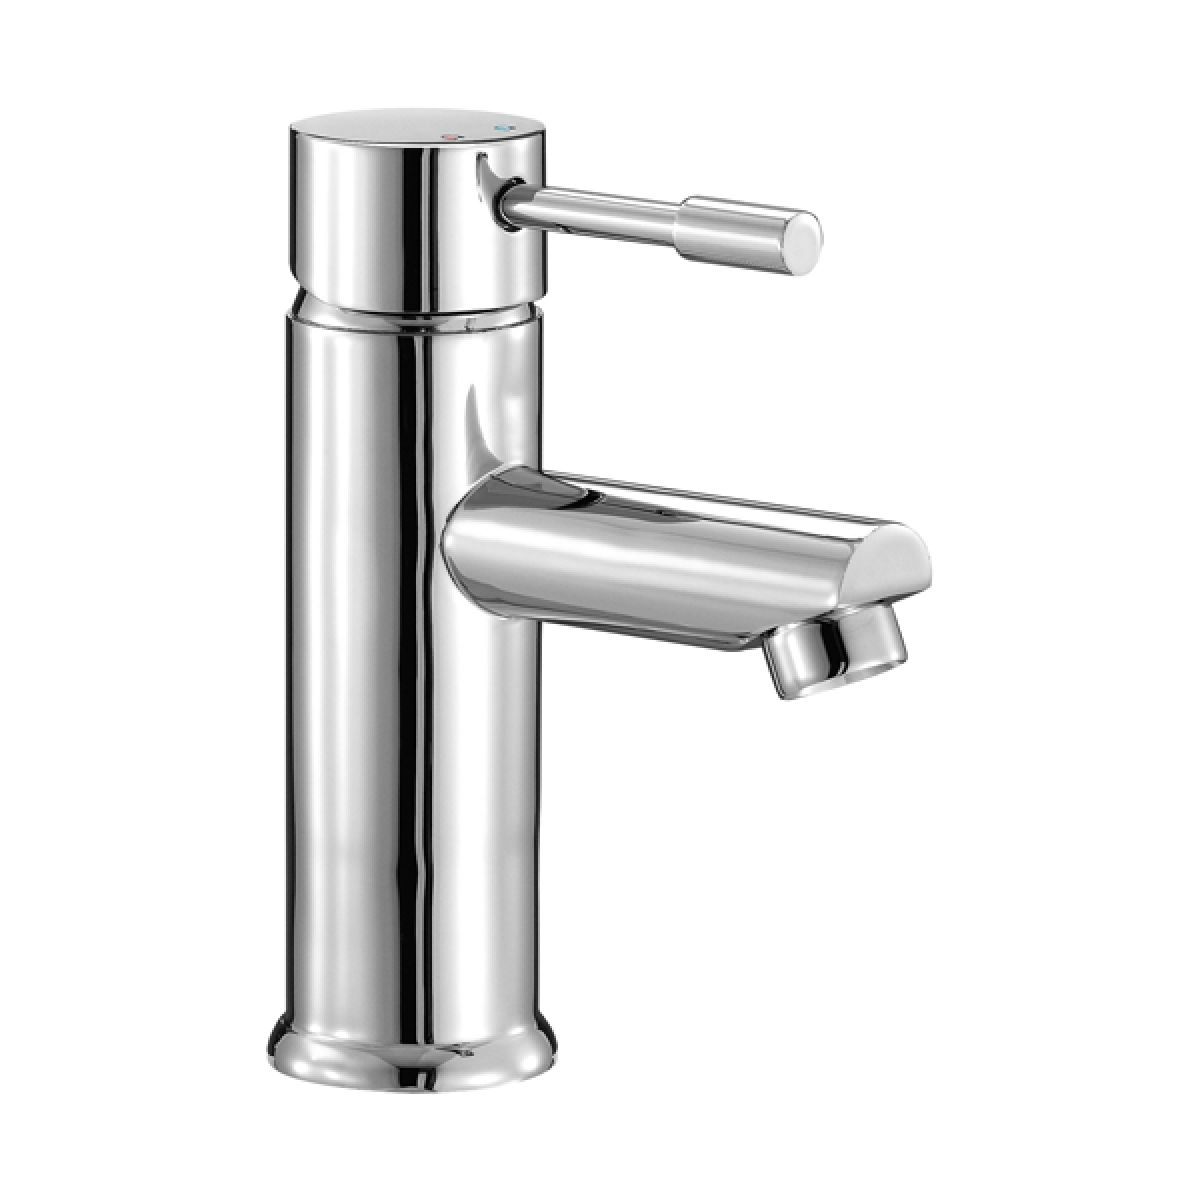 Eurostream Primo Mono Basin Mixer with Pop Up Waste